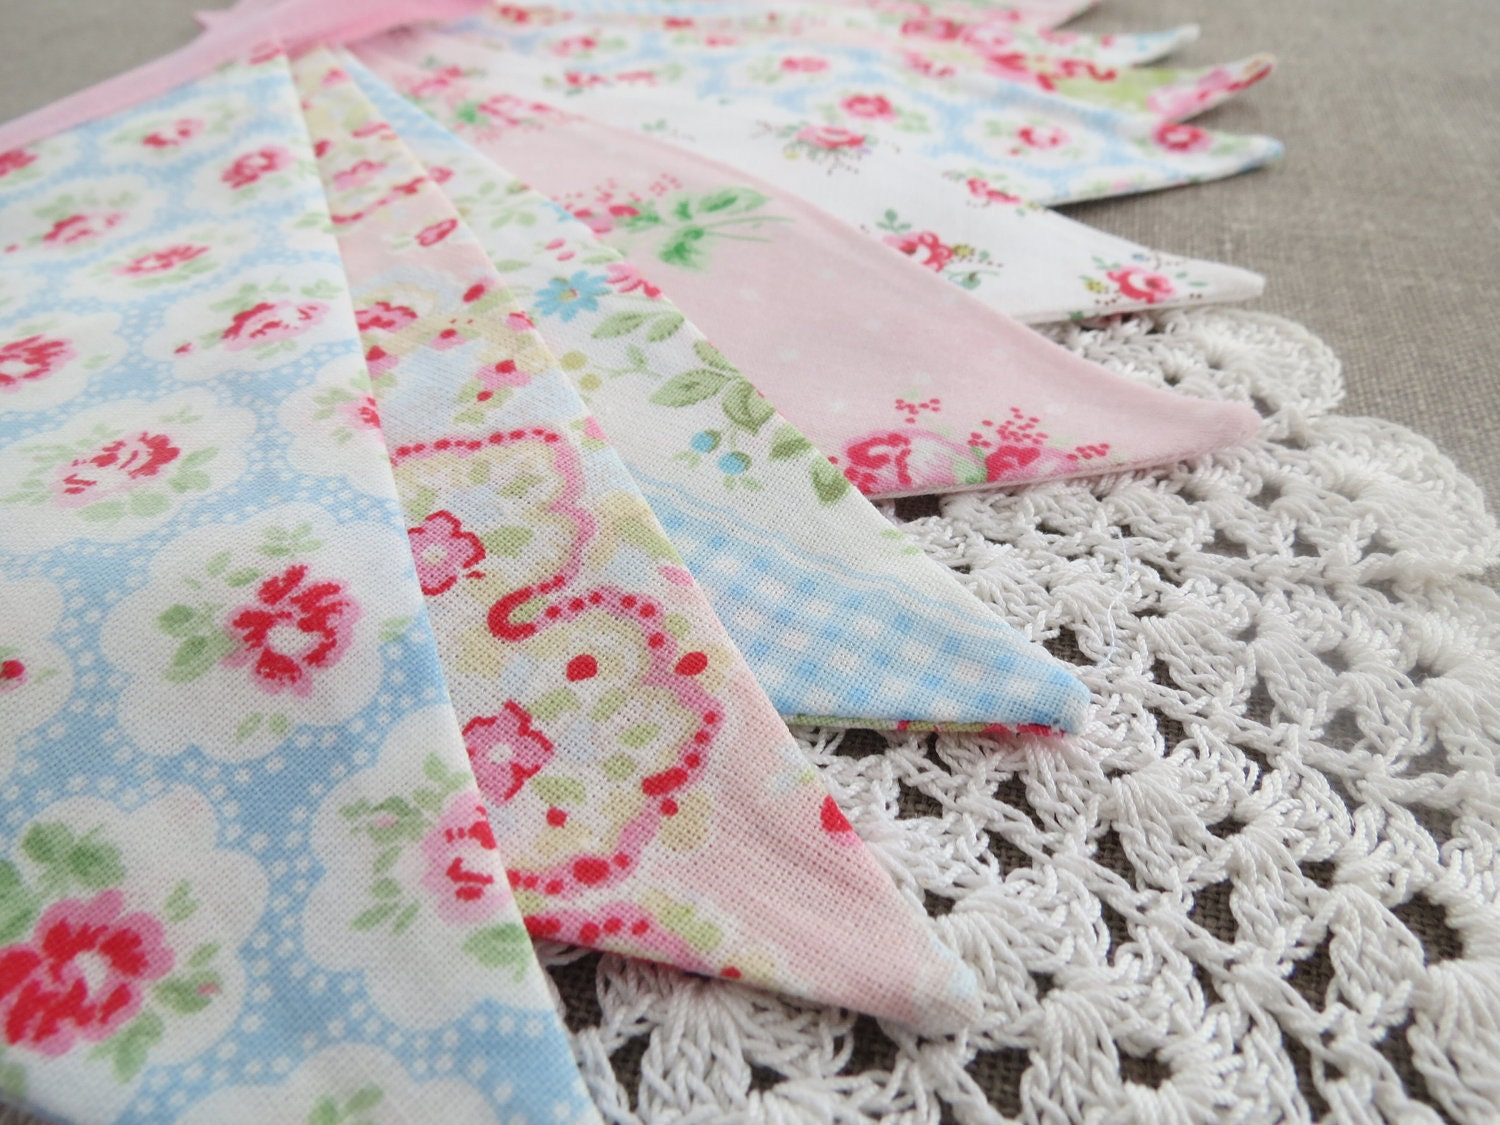 Pretty Shabby Chic Party Bunting - CATHS FLOWERS - A string of pretty floral flags for Happy Celebrations - LittleKittenHomemade